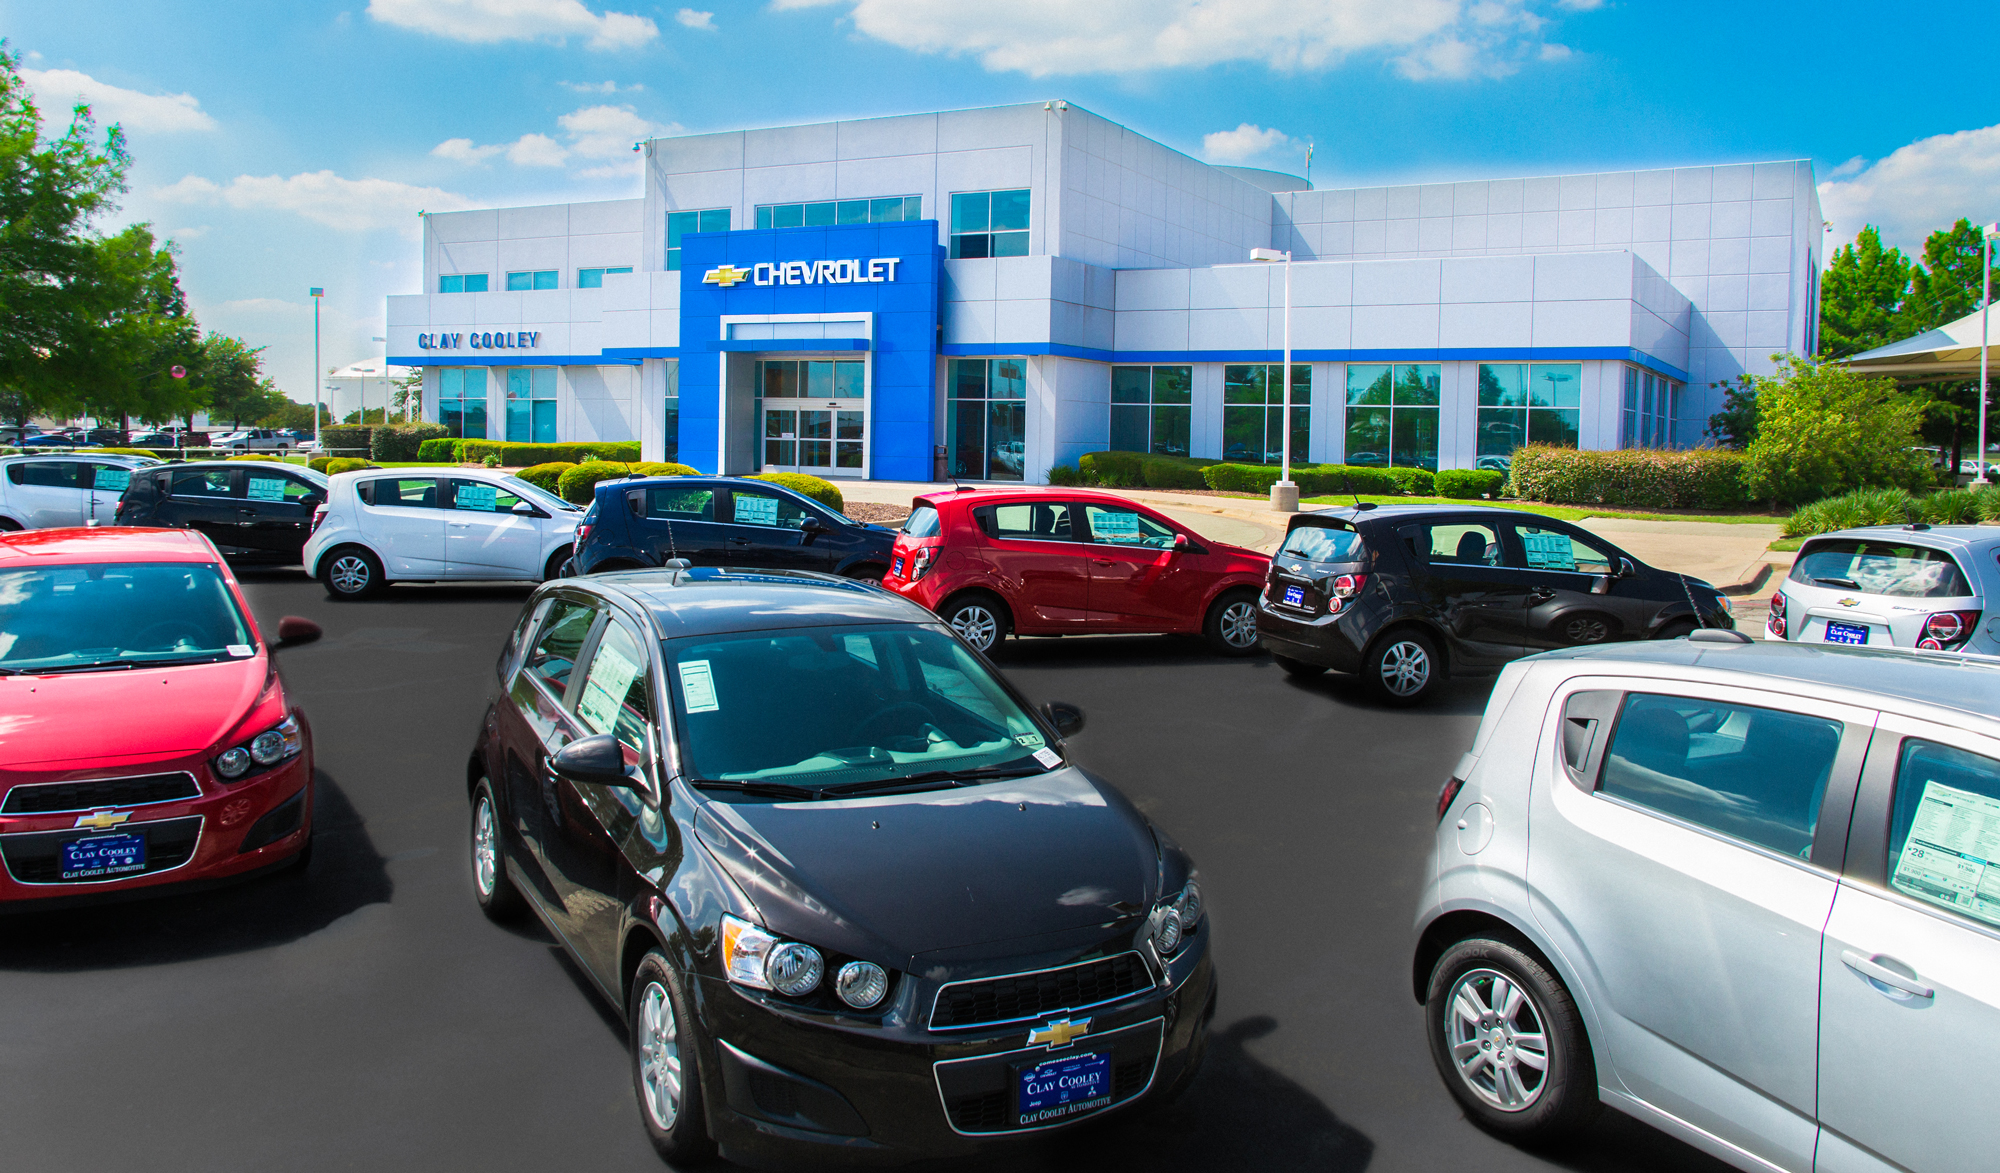 Superb Pushing The Needle In Volume Clay Cooley Chevrolet | DFW DEALERSHIPS | Home